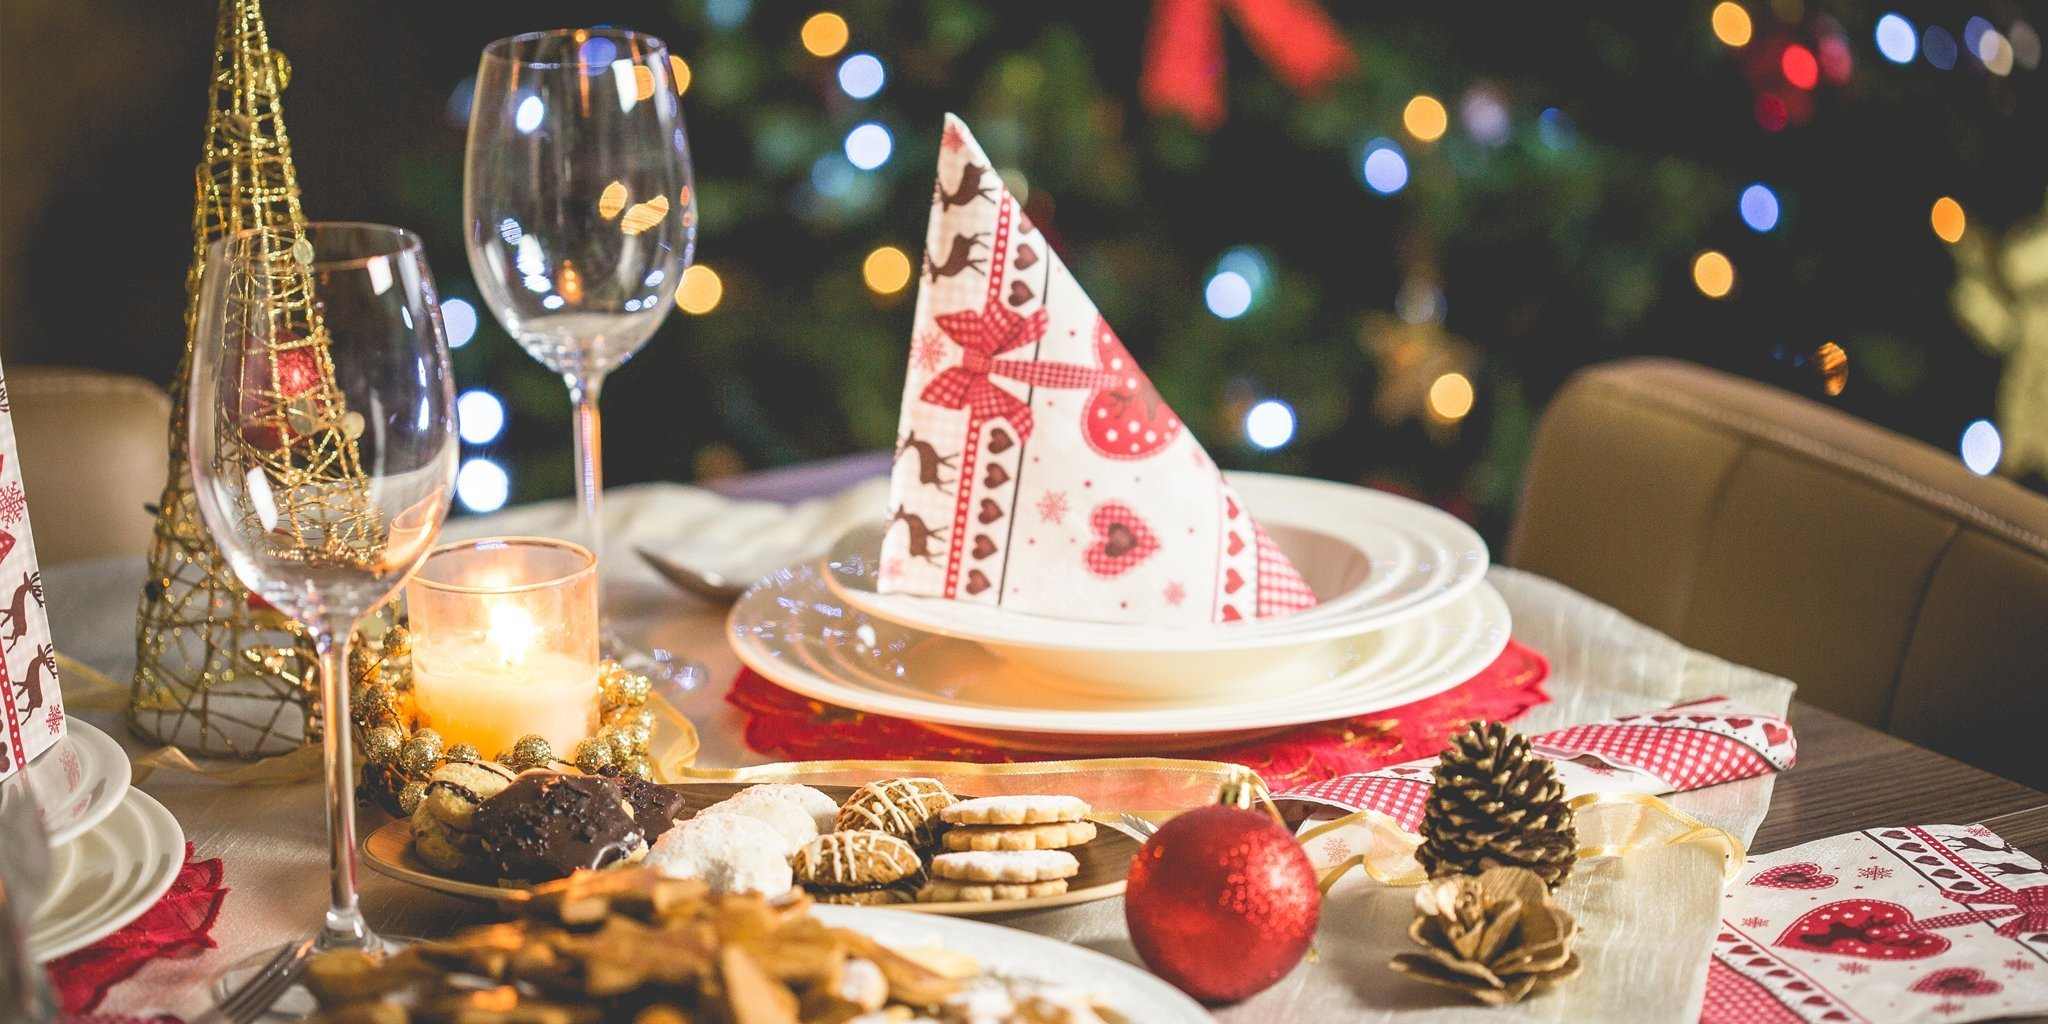 8 Tips for Healthy Holiday-Eating